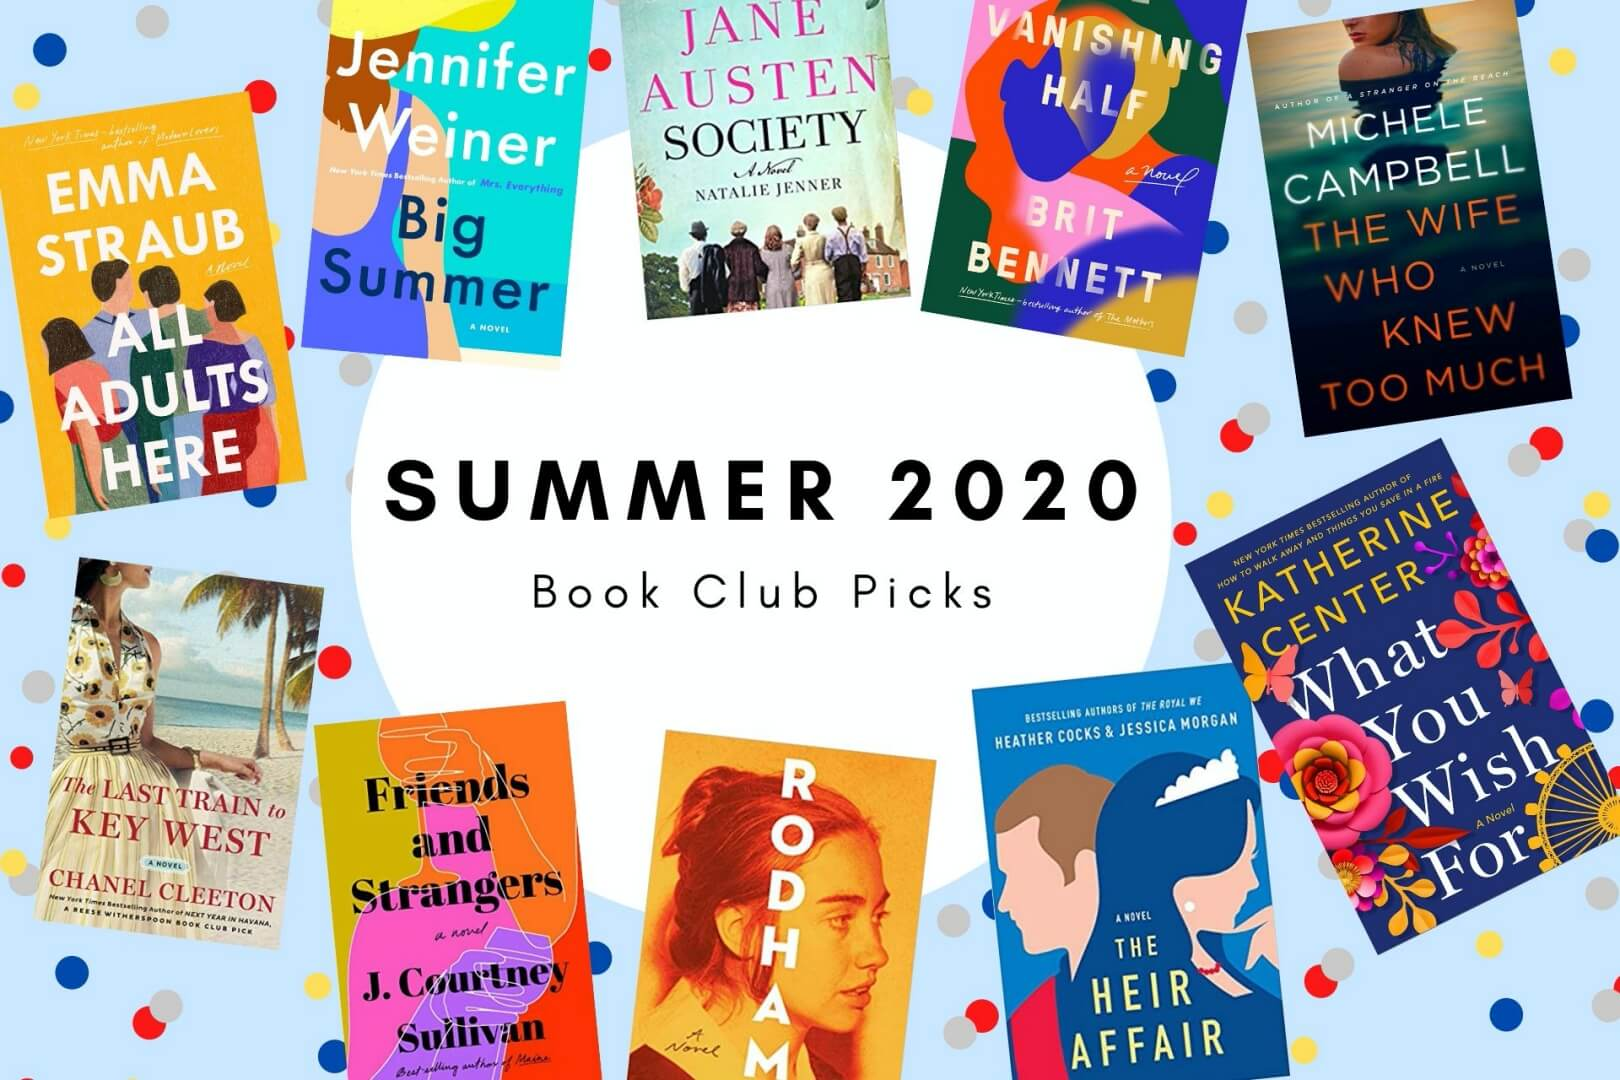 summer 2020 book club picks - book club chat